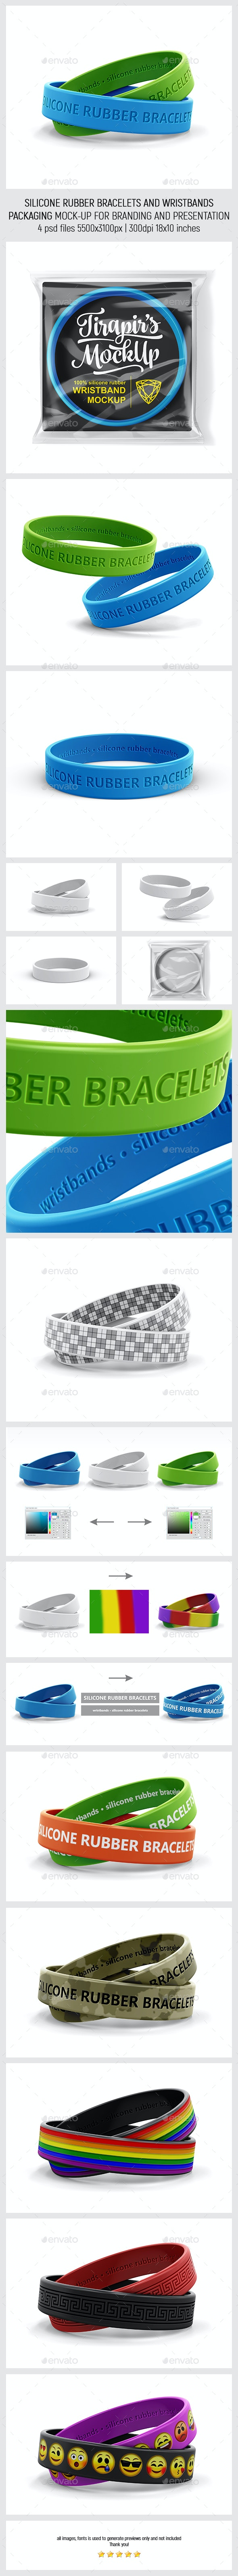 Silicone Rubber Bracelets And Wristbands Packaging MockUp